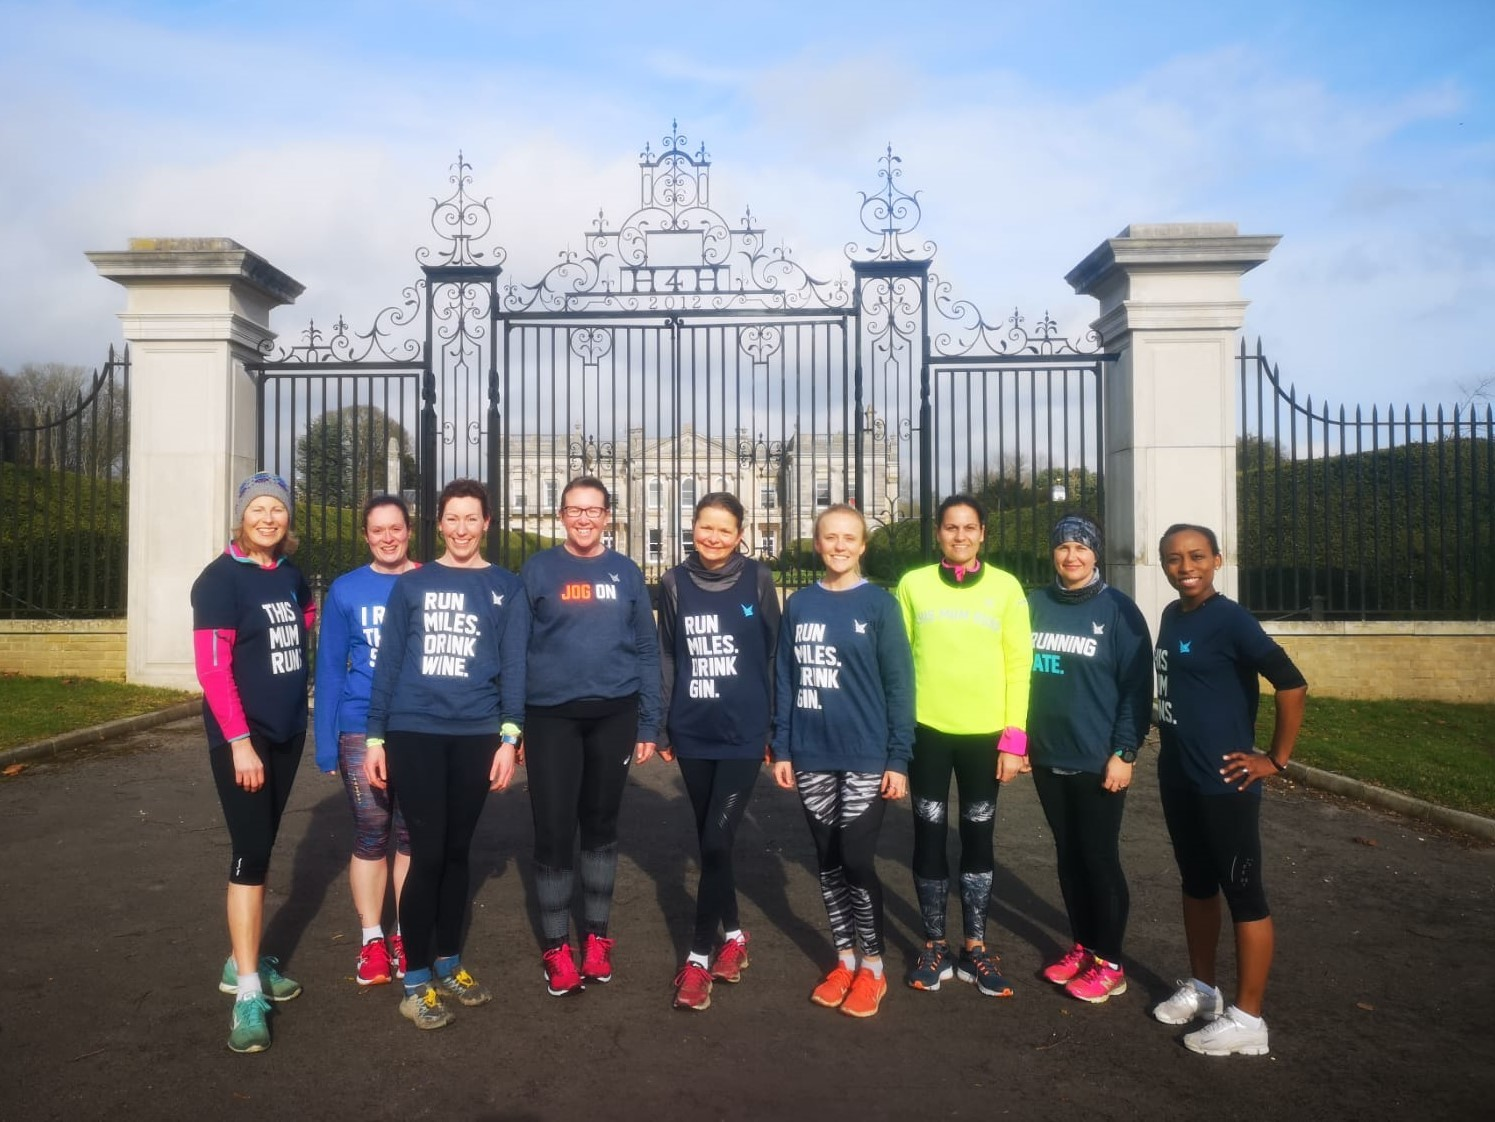 Rosalind Oram and other mums on a pre-launch run